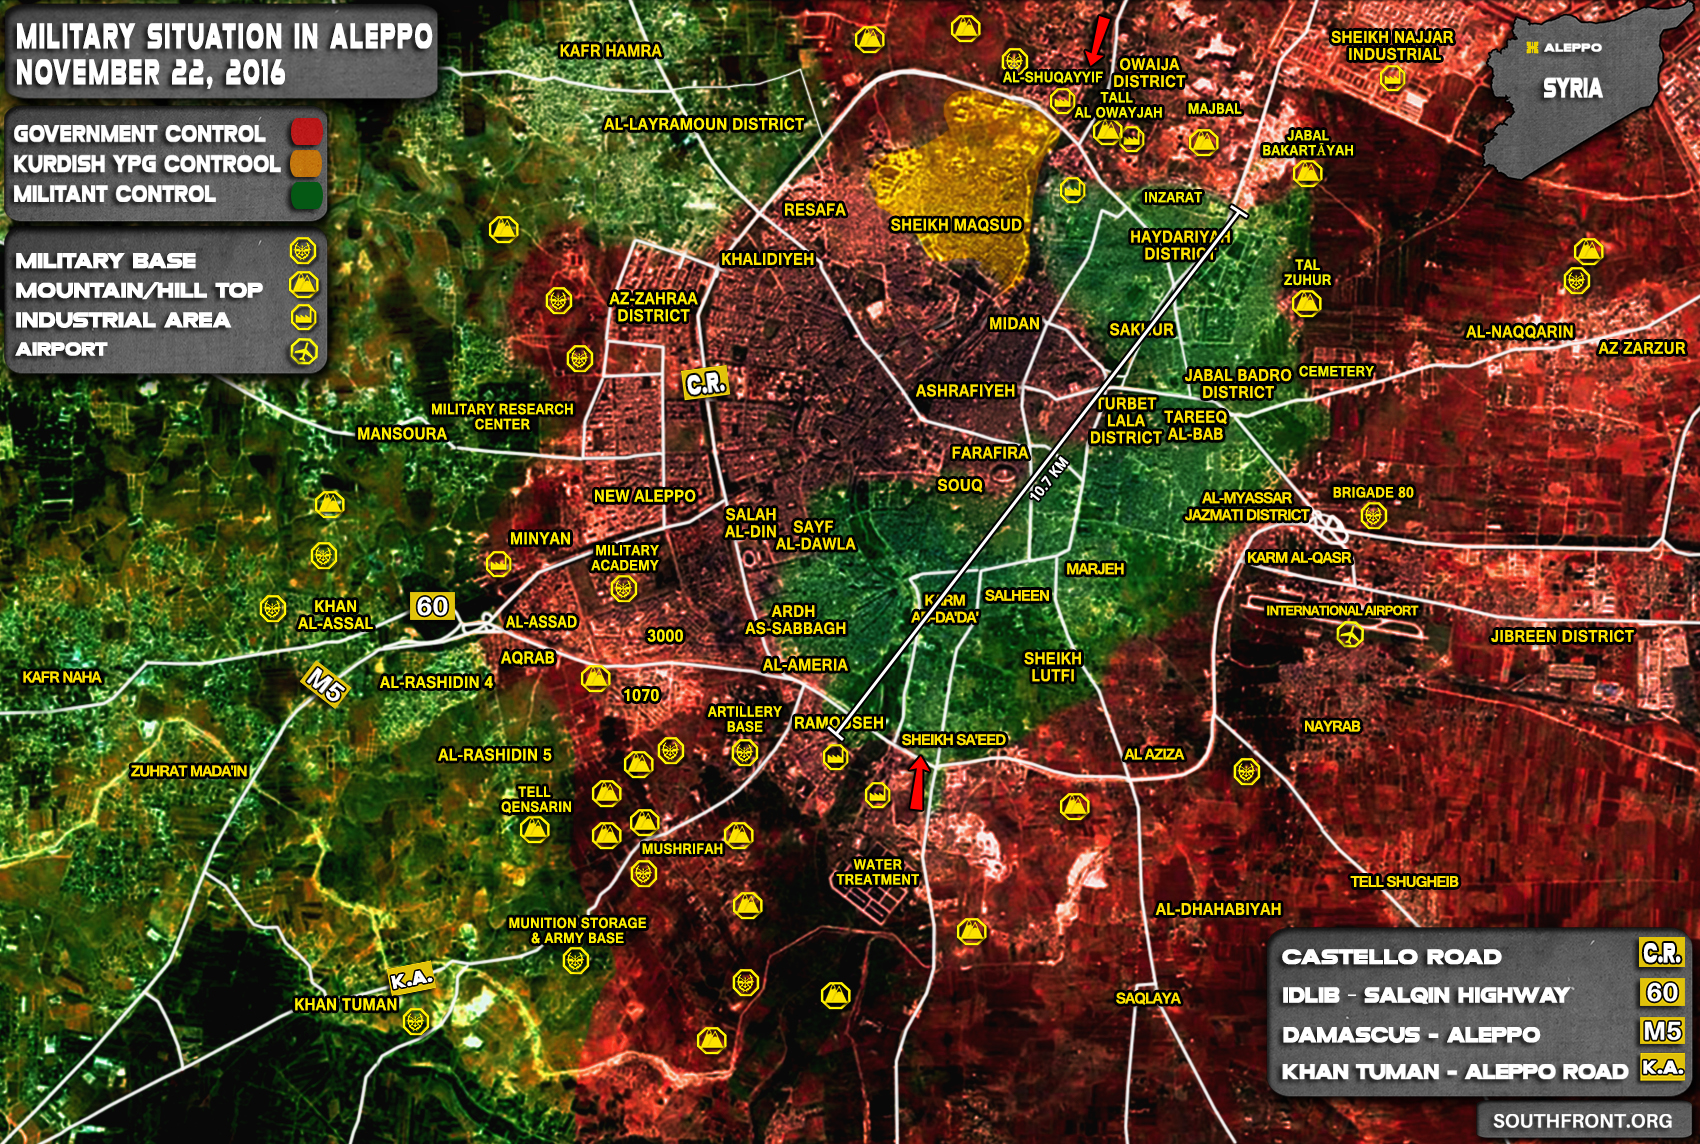 Overview of Military Situation in Aleppo City on November 22, 2016